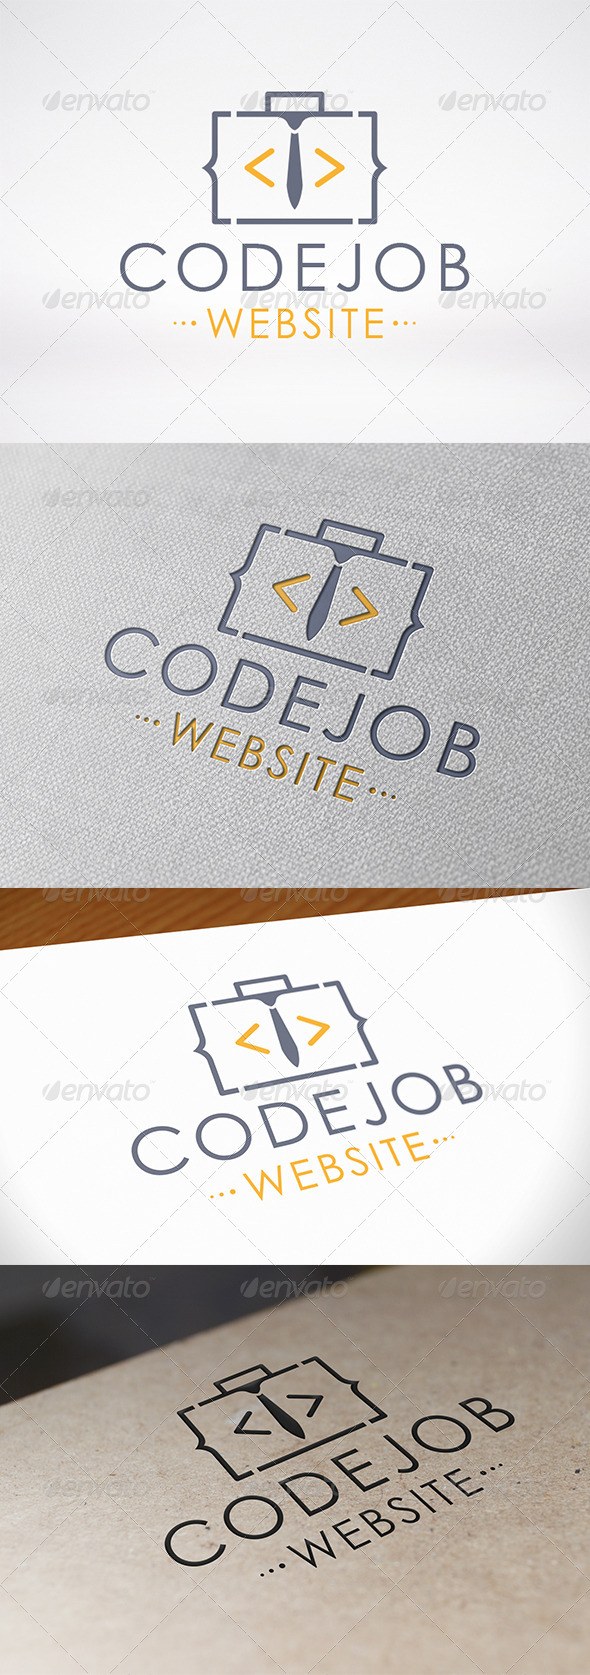 Code Job Logo Template - Objects Logo Templates